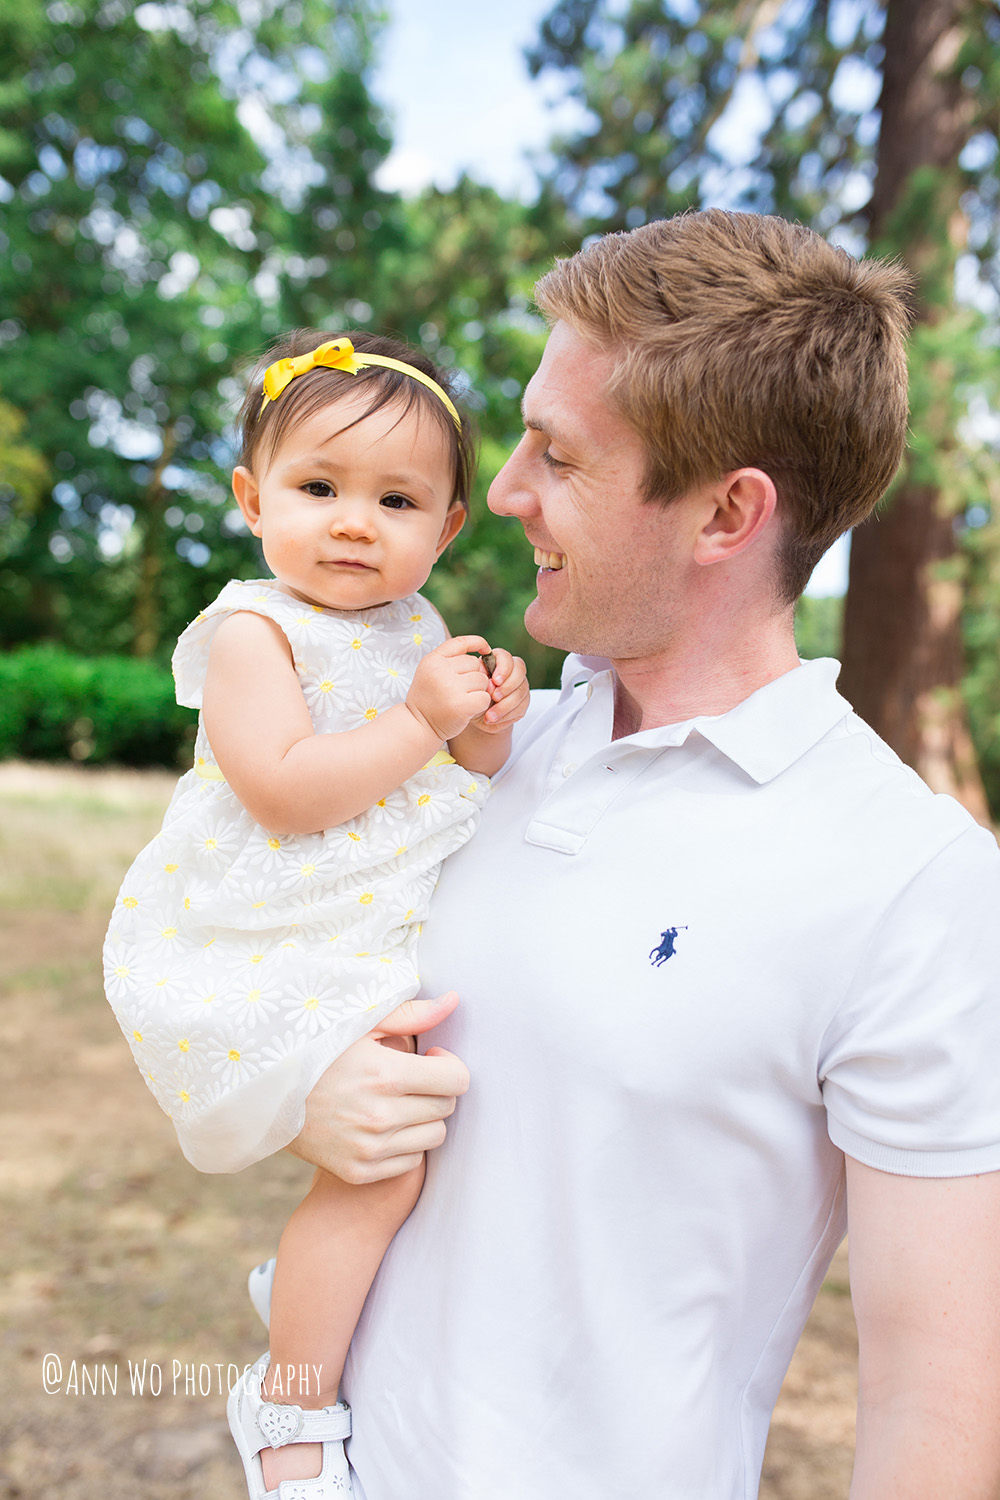 Lifestyle-Family-Photo-Session-First-Year-Outdoor-Cake-Smash-Baby-Girl-London-42.JPG